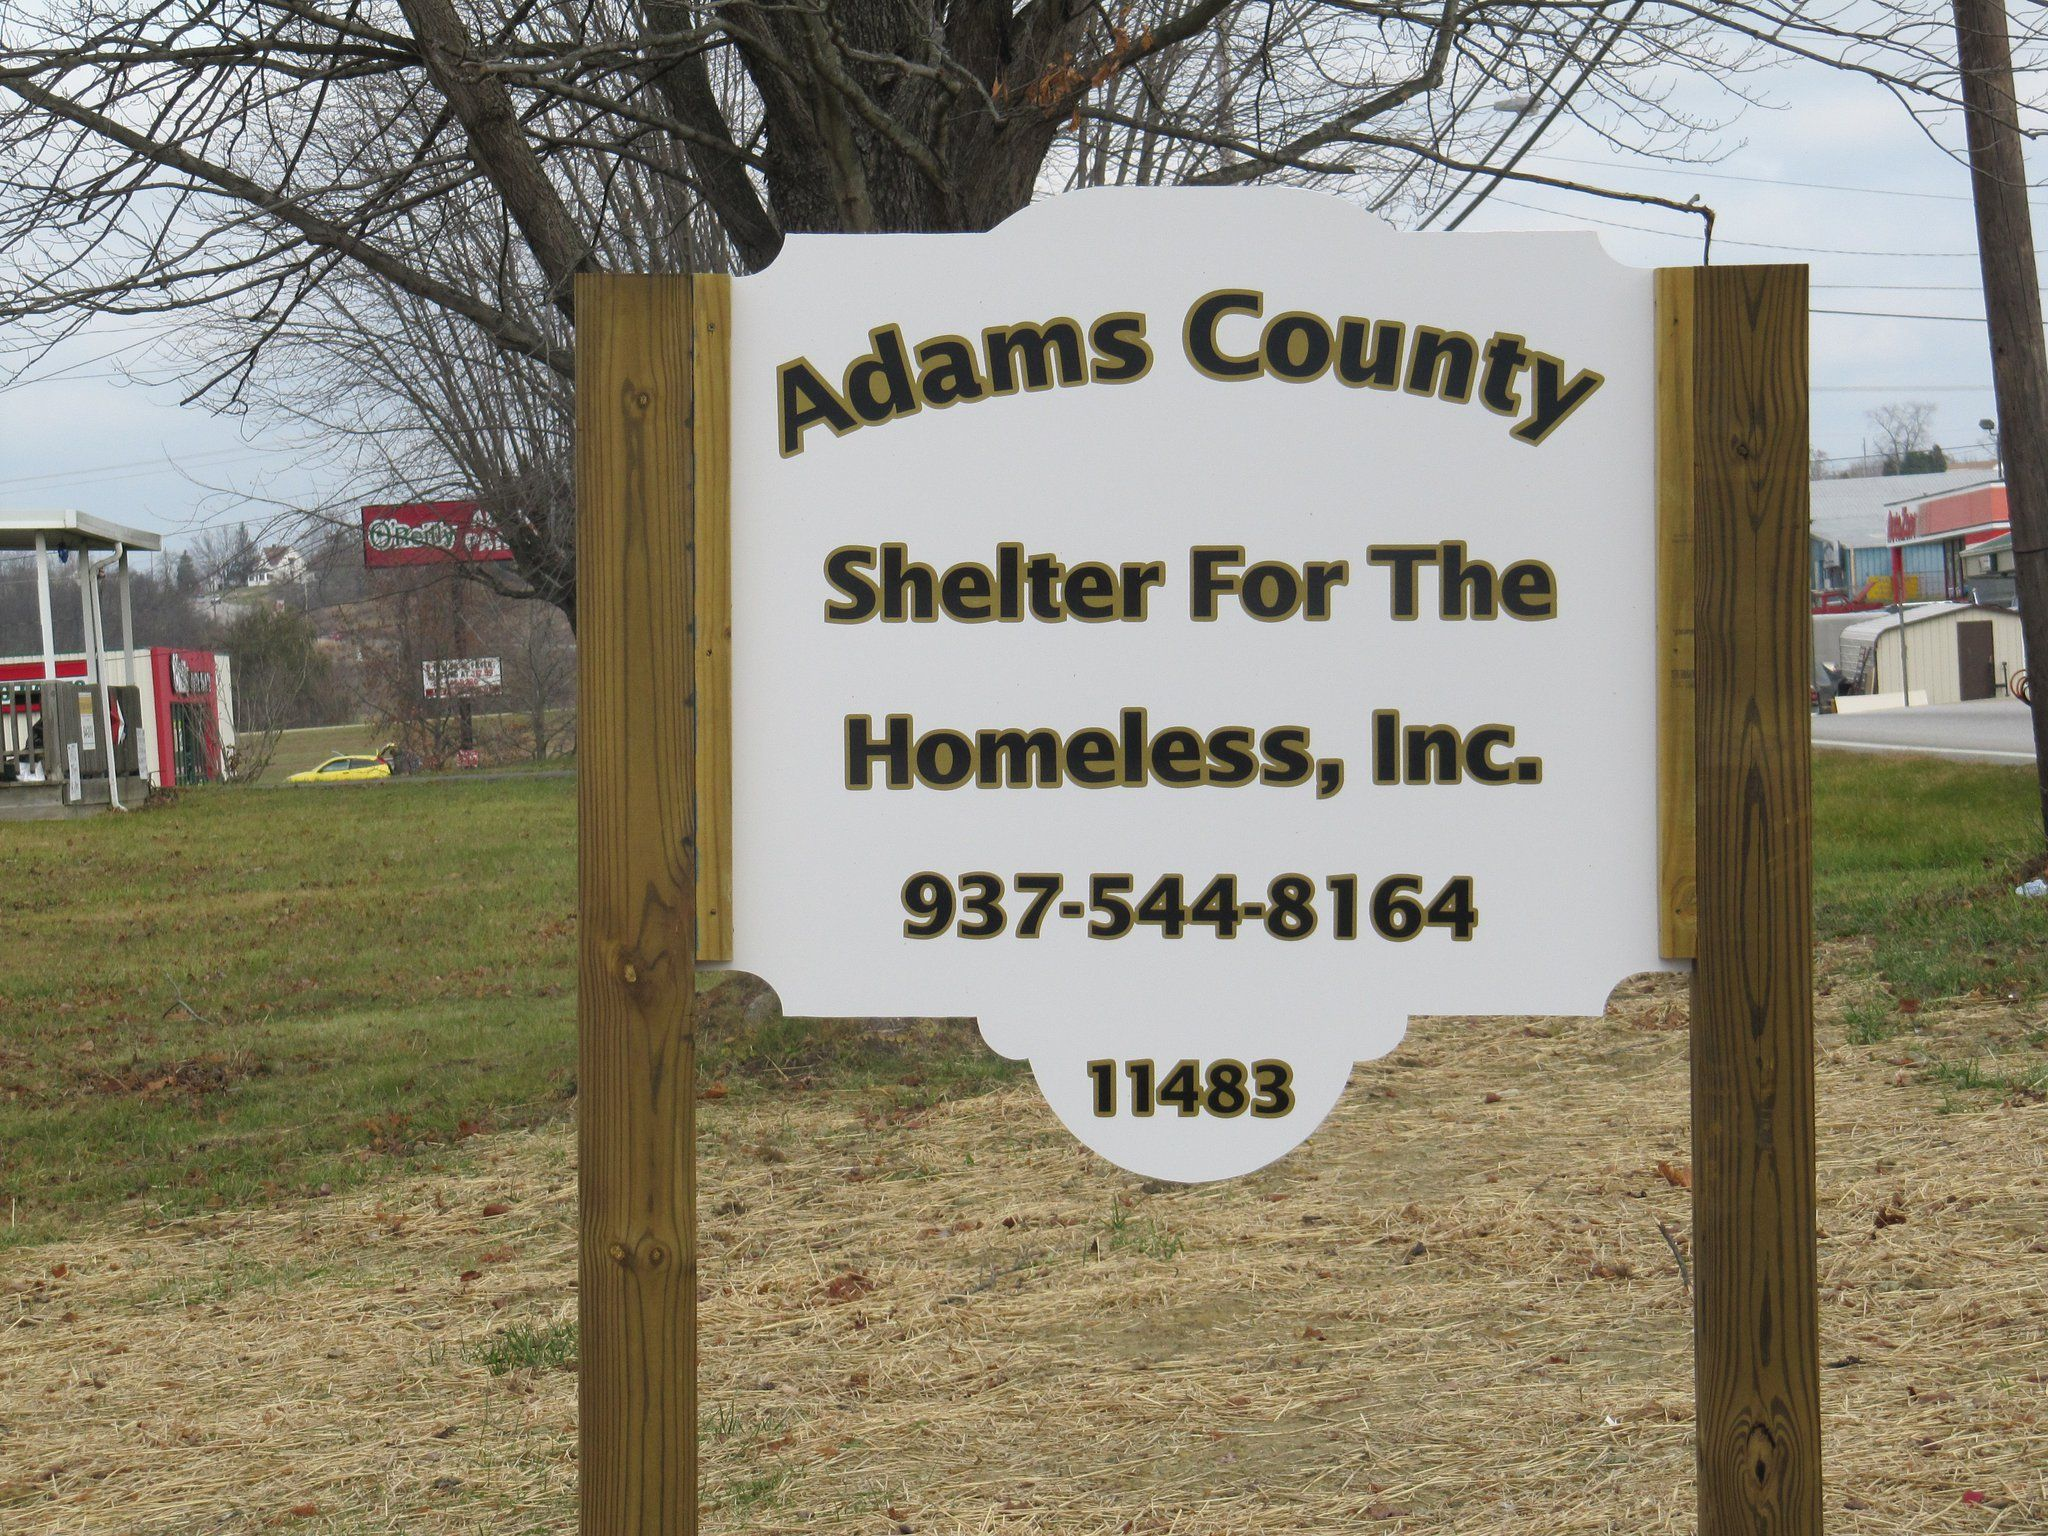 Adams County Shelter for the Homeless,Inc.